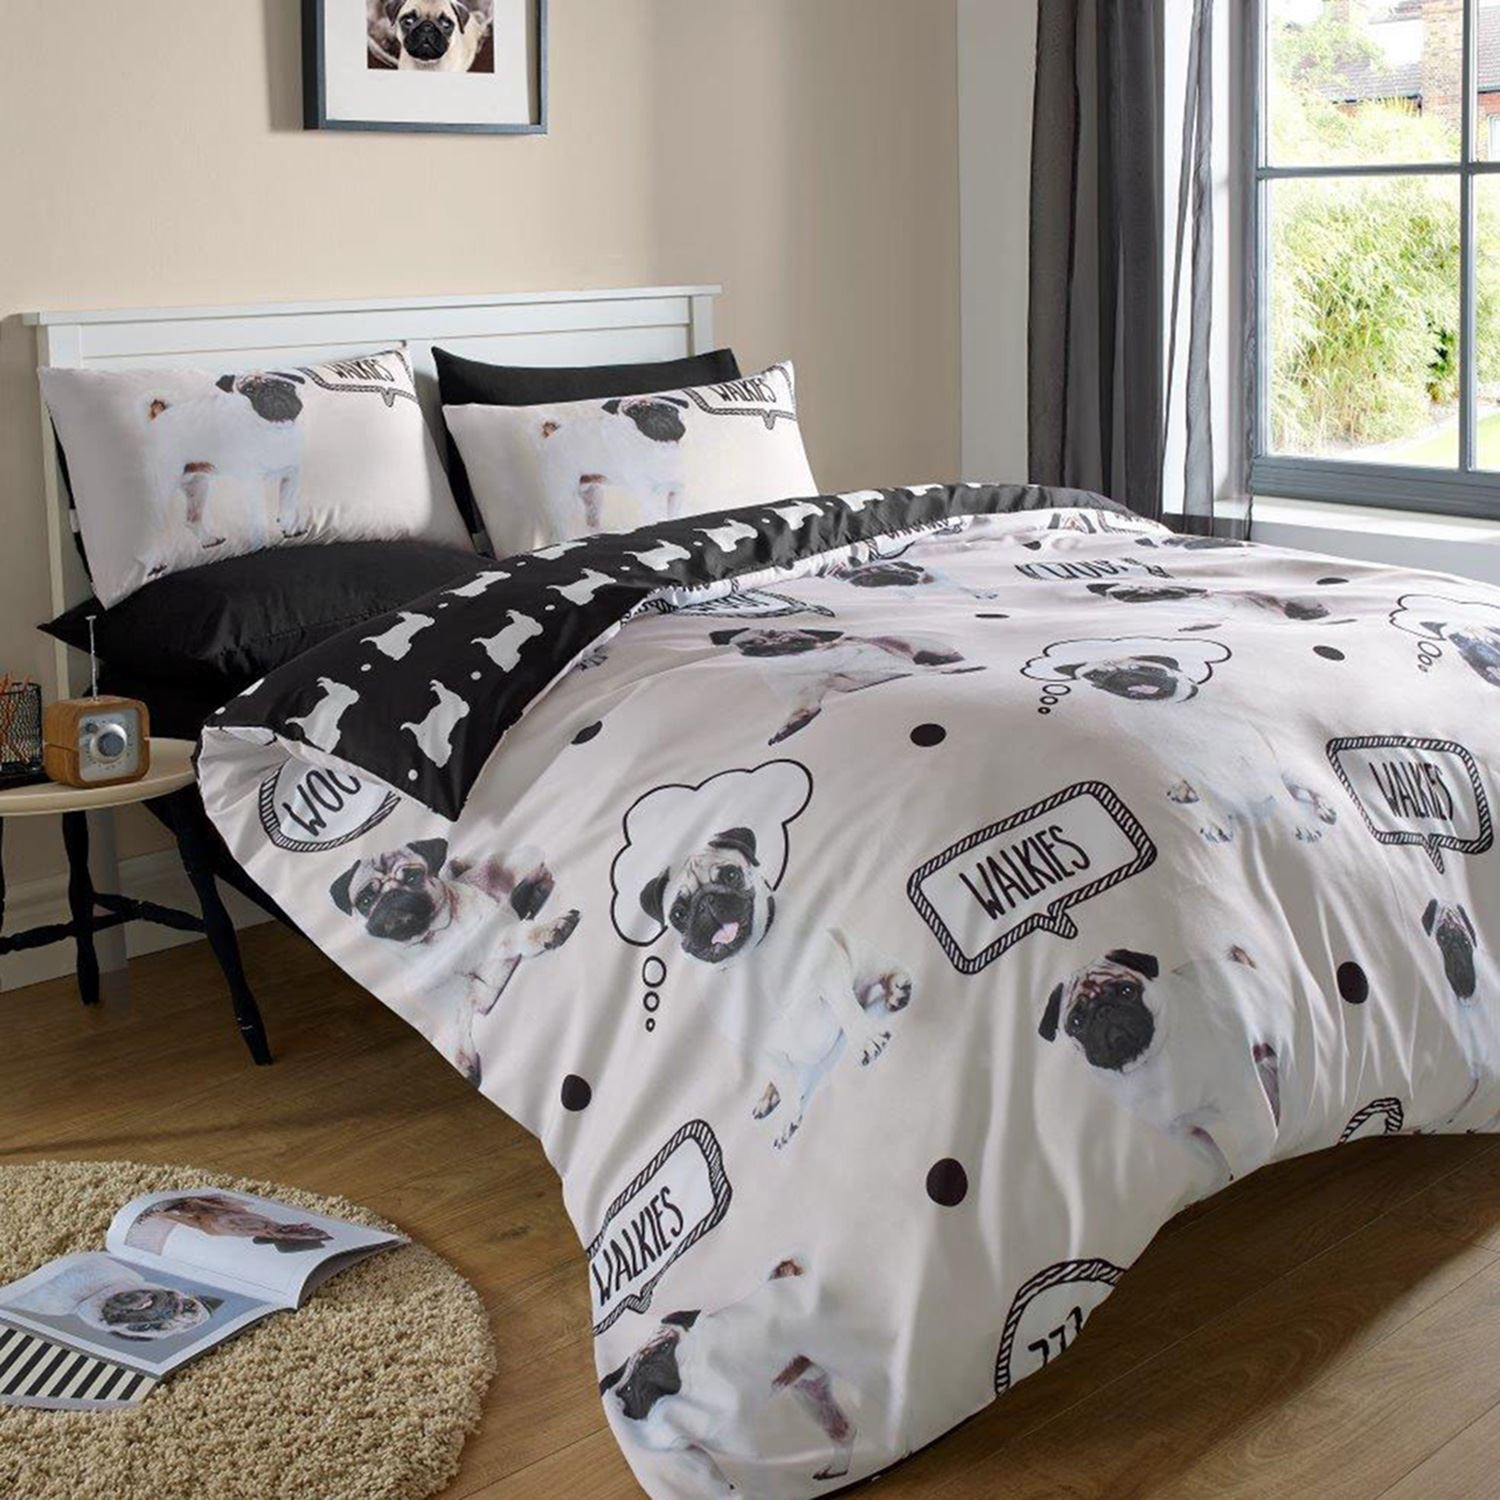 dreamscene king duvet cover sets adult bedding sets pugs floral  - dreamscenekingduvetcoversetsadultbeddingsets